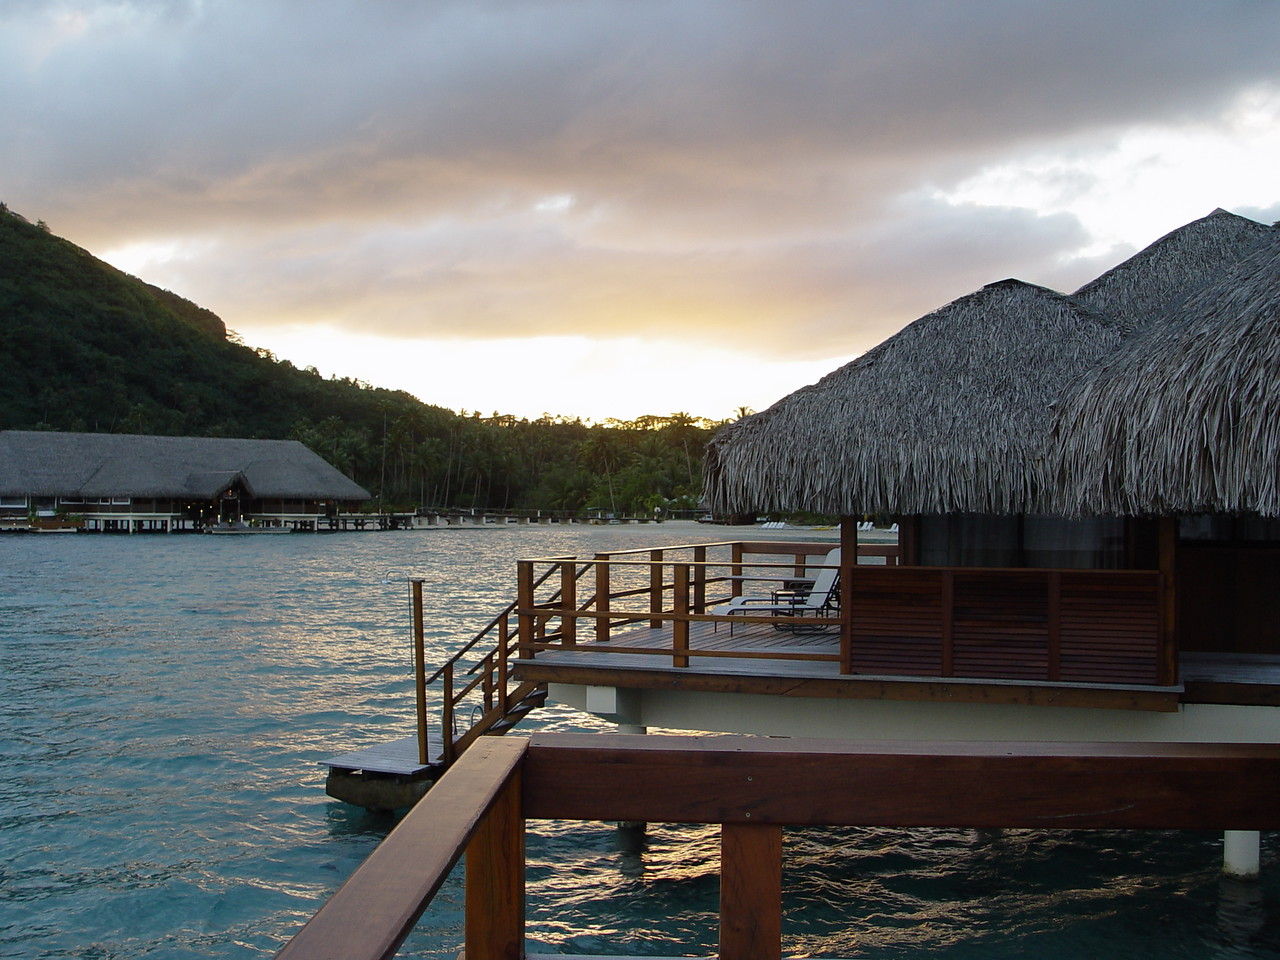 Another view from our bungalow